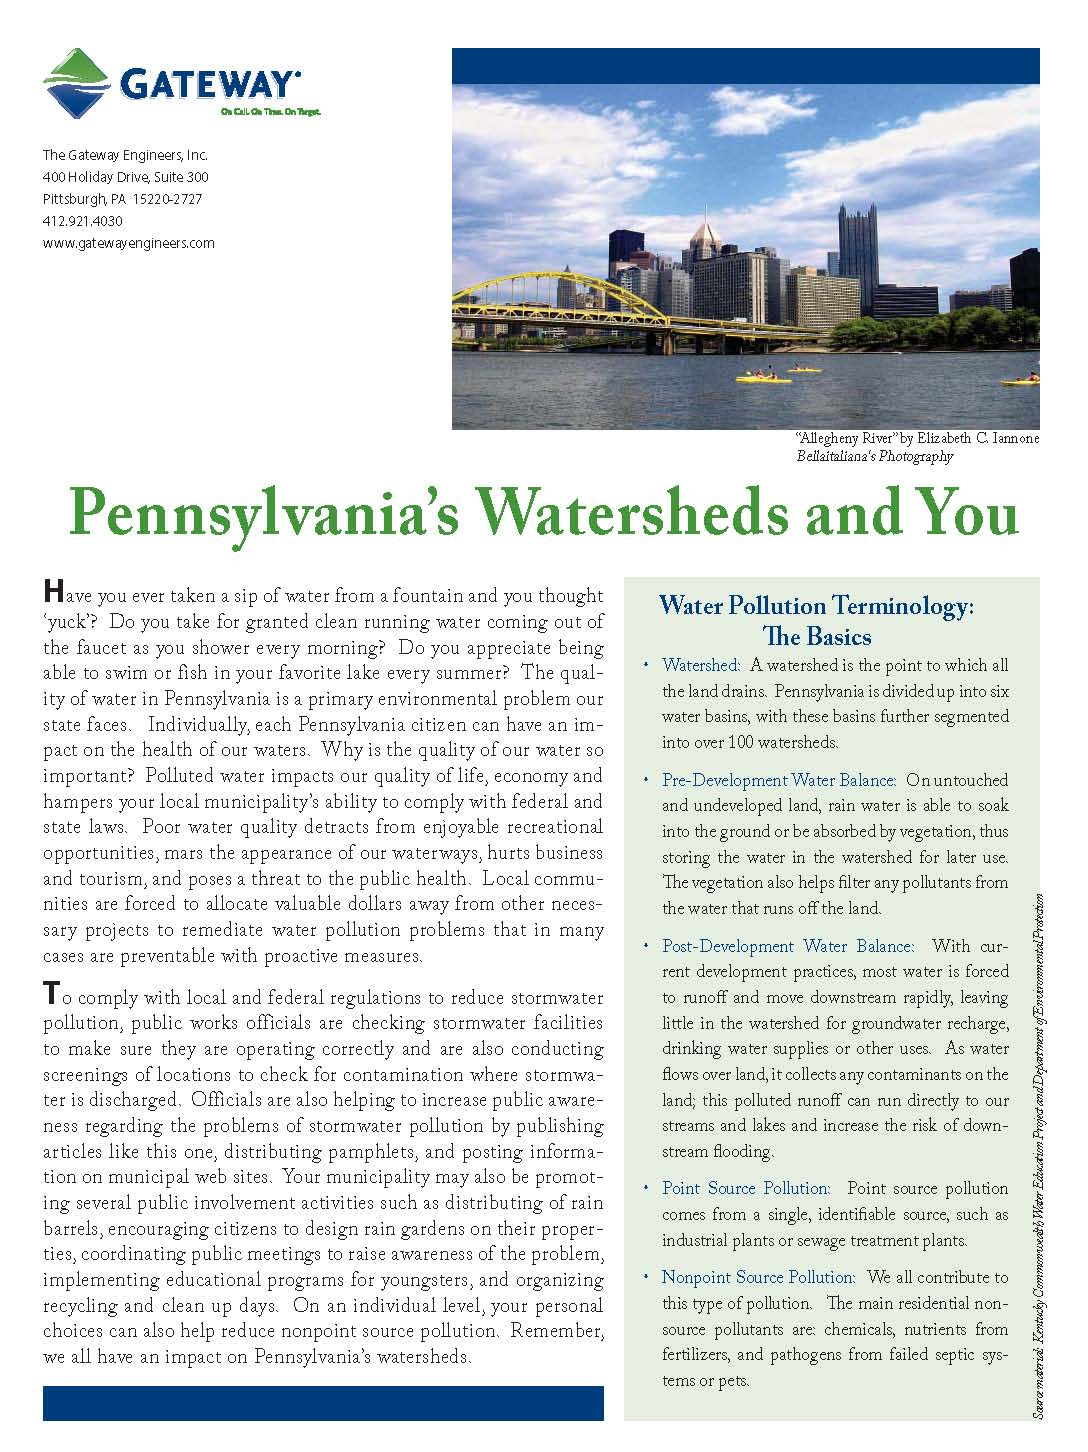 Pennsylvania's Watersheds and You.jpg